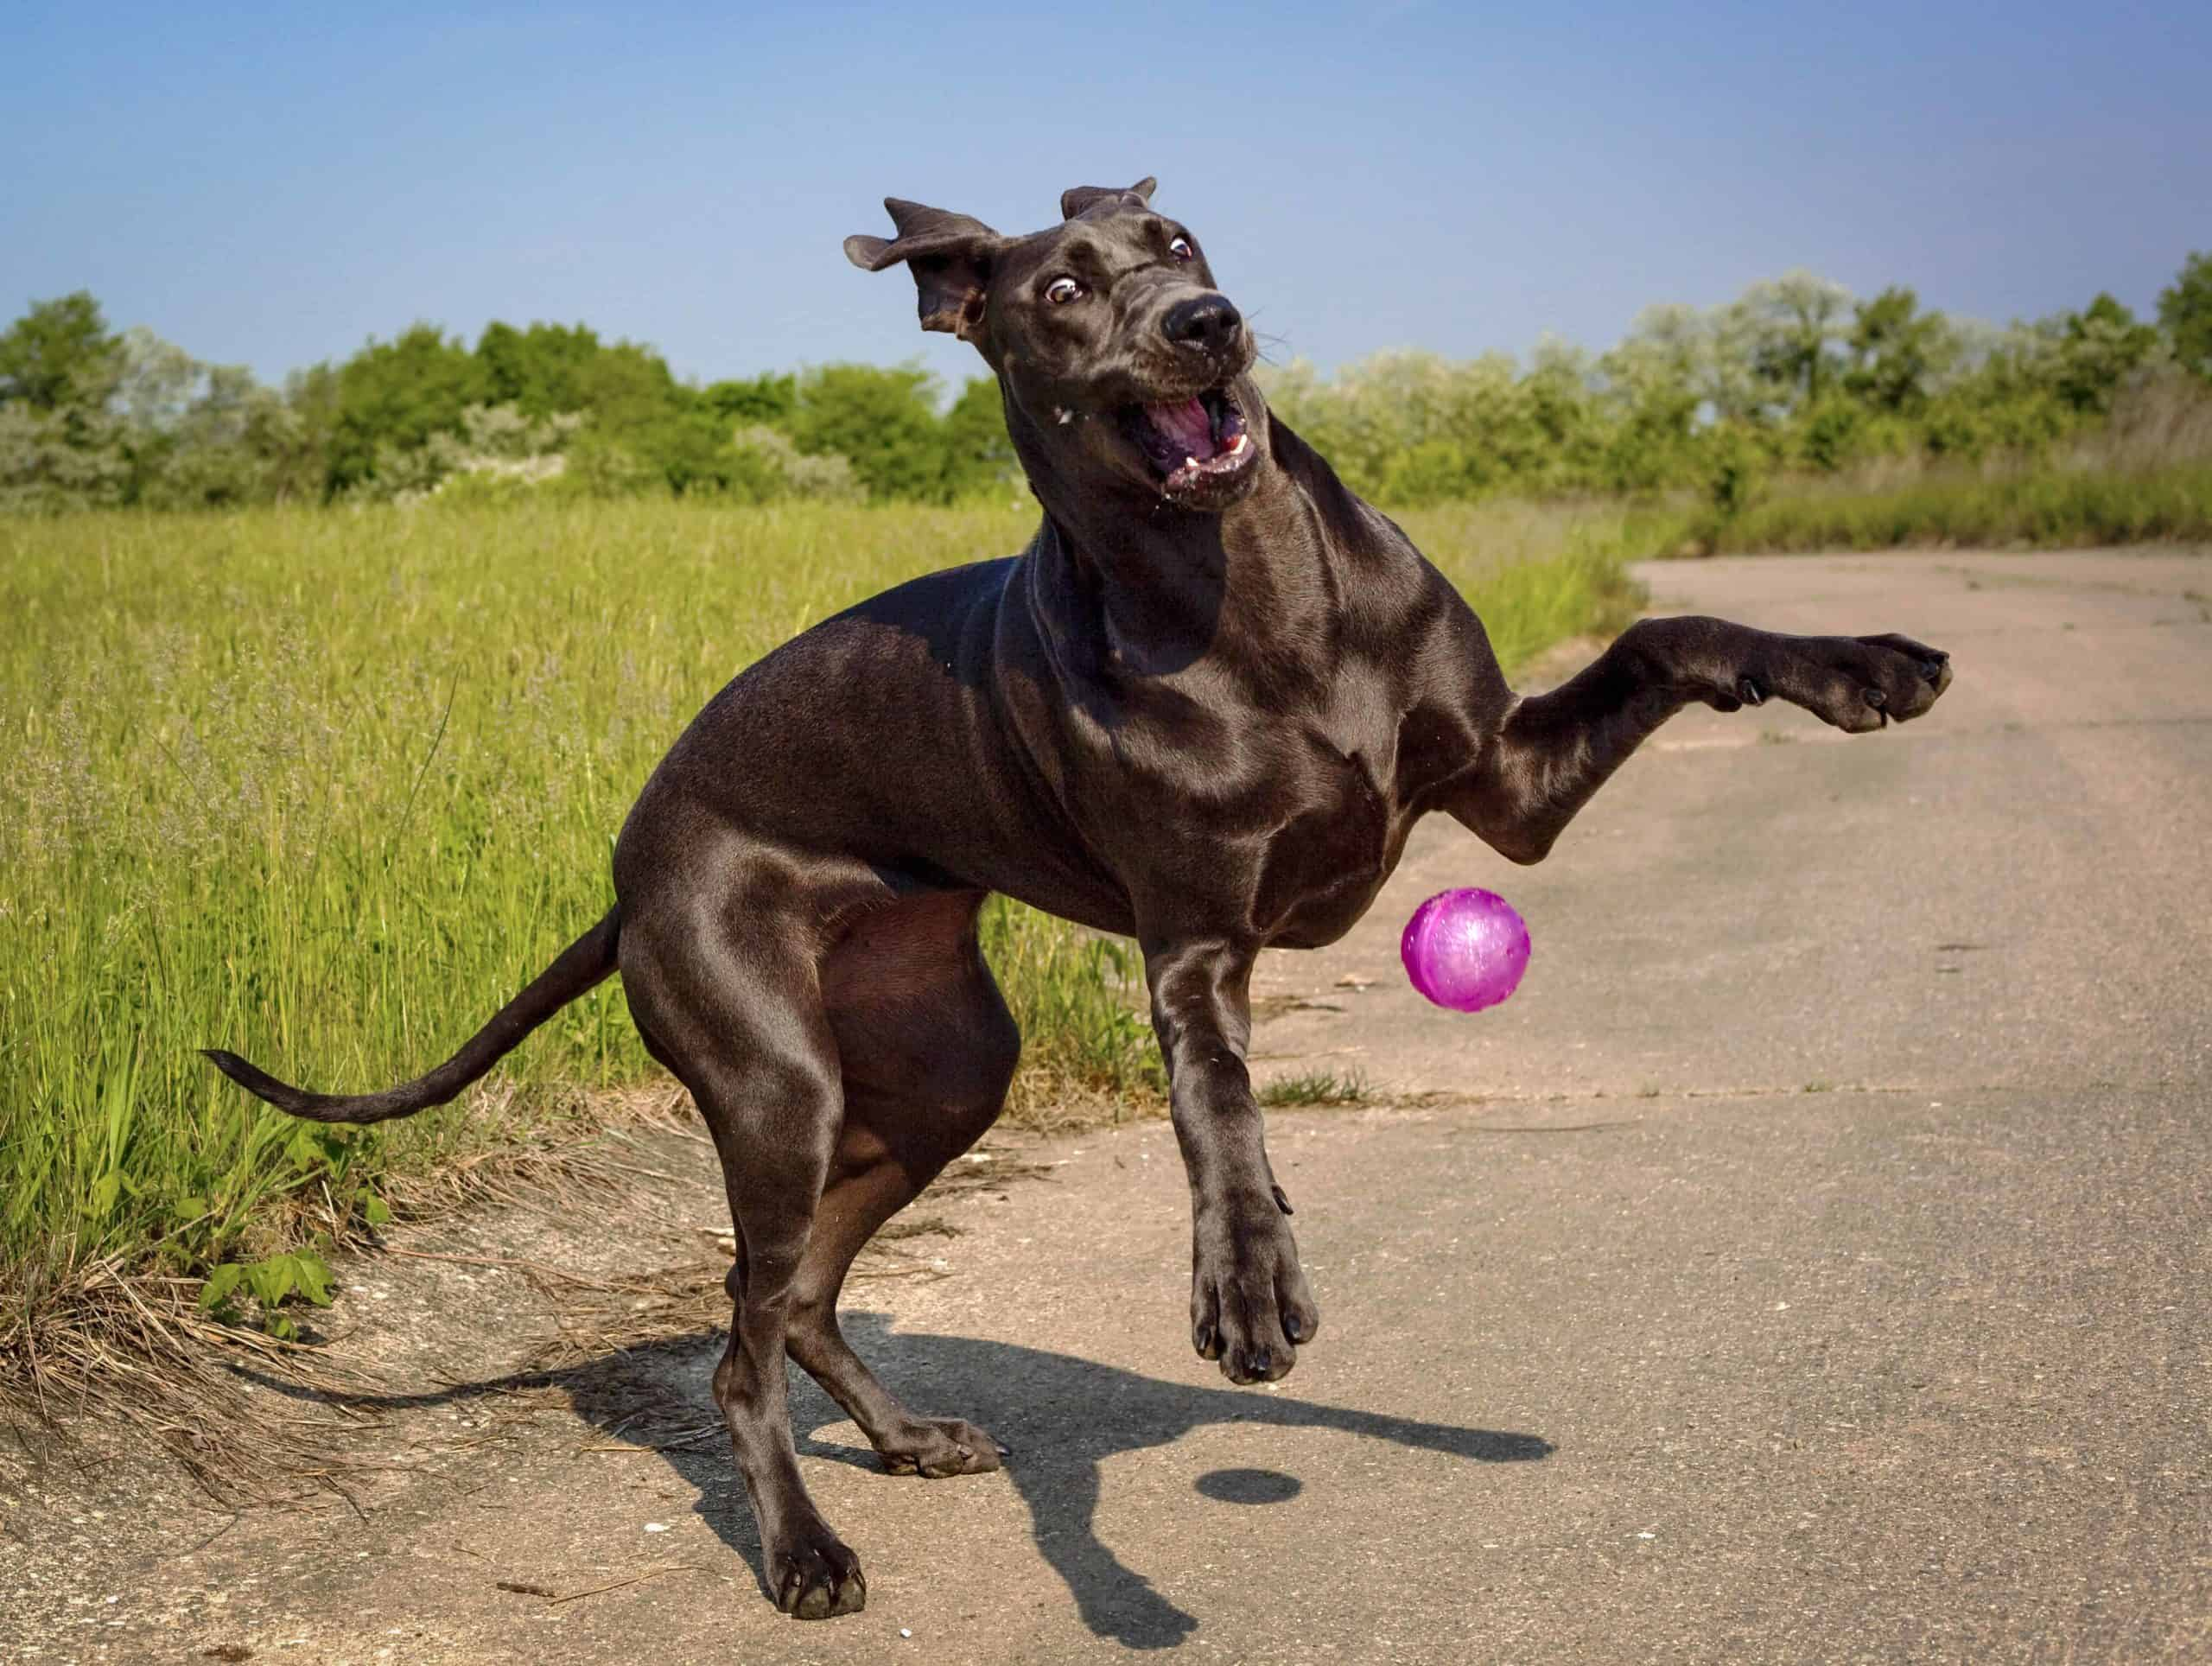 Uncoordinated Great Dane struggles to catch a ball. Do you know what to expect and how to cope when your puppy becomes a difficult teenager? Dogs may assert independence and stop obeying.